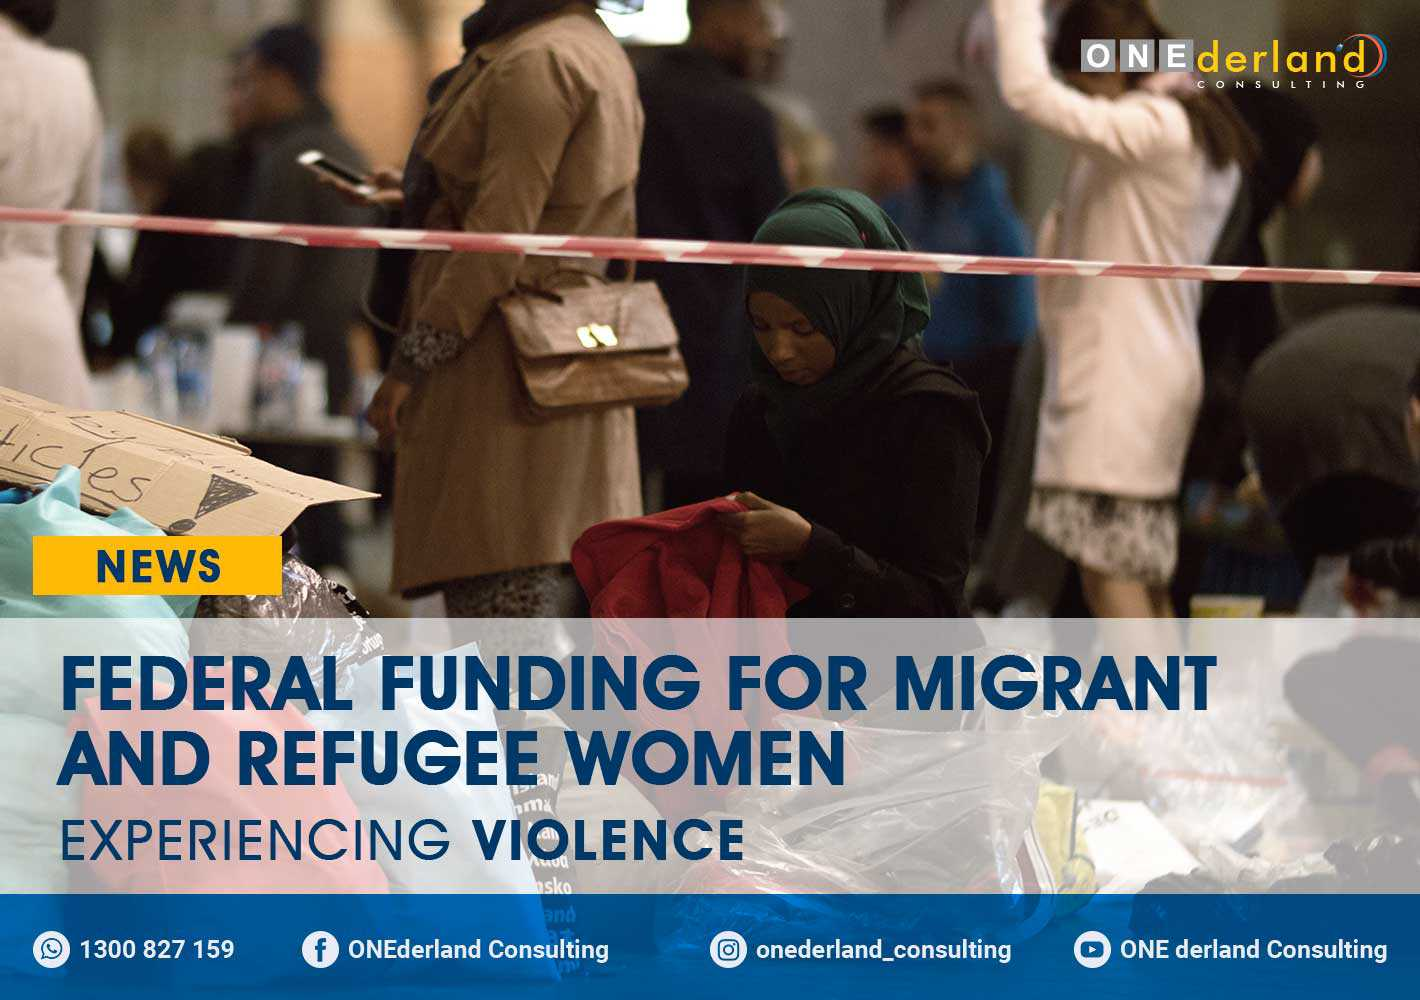 UPDATE: Payment Pilot to Support Migrant and Refugee Women